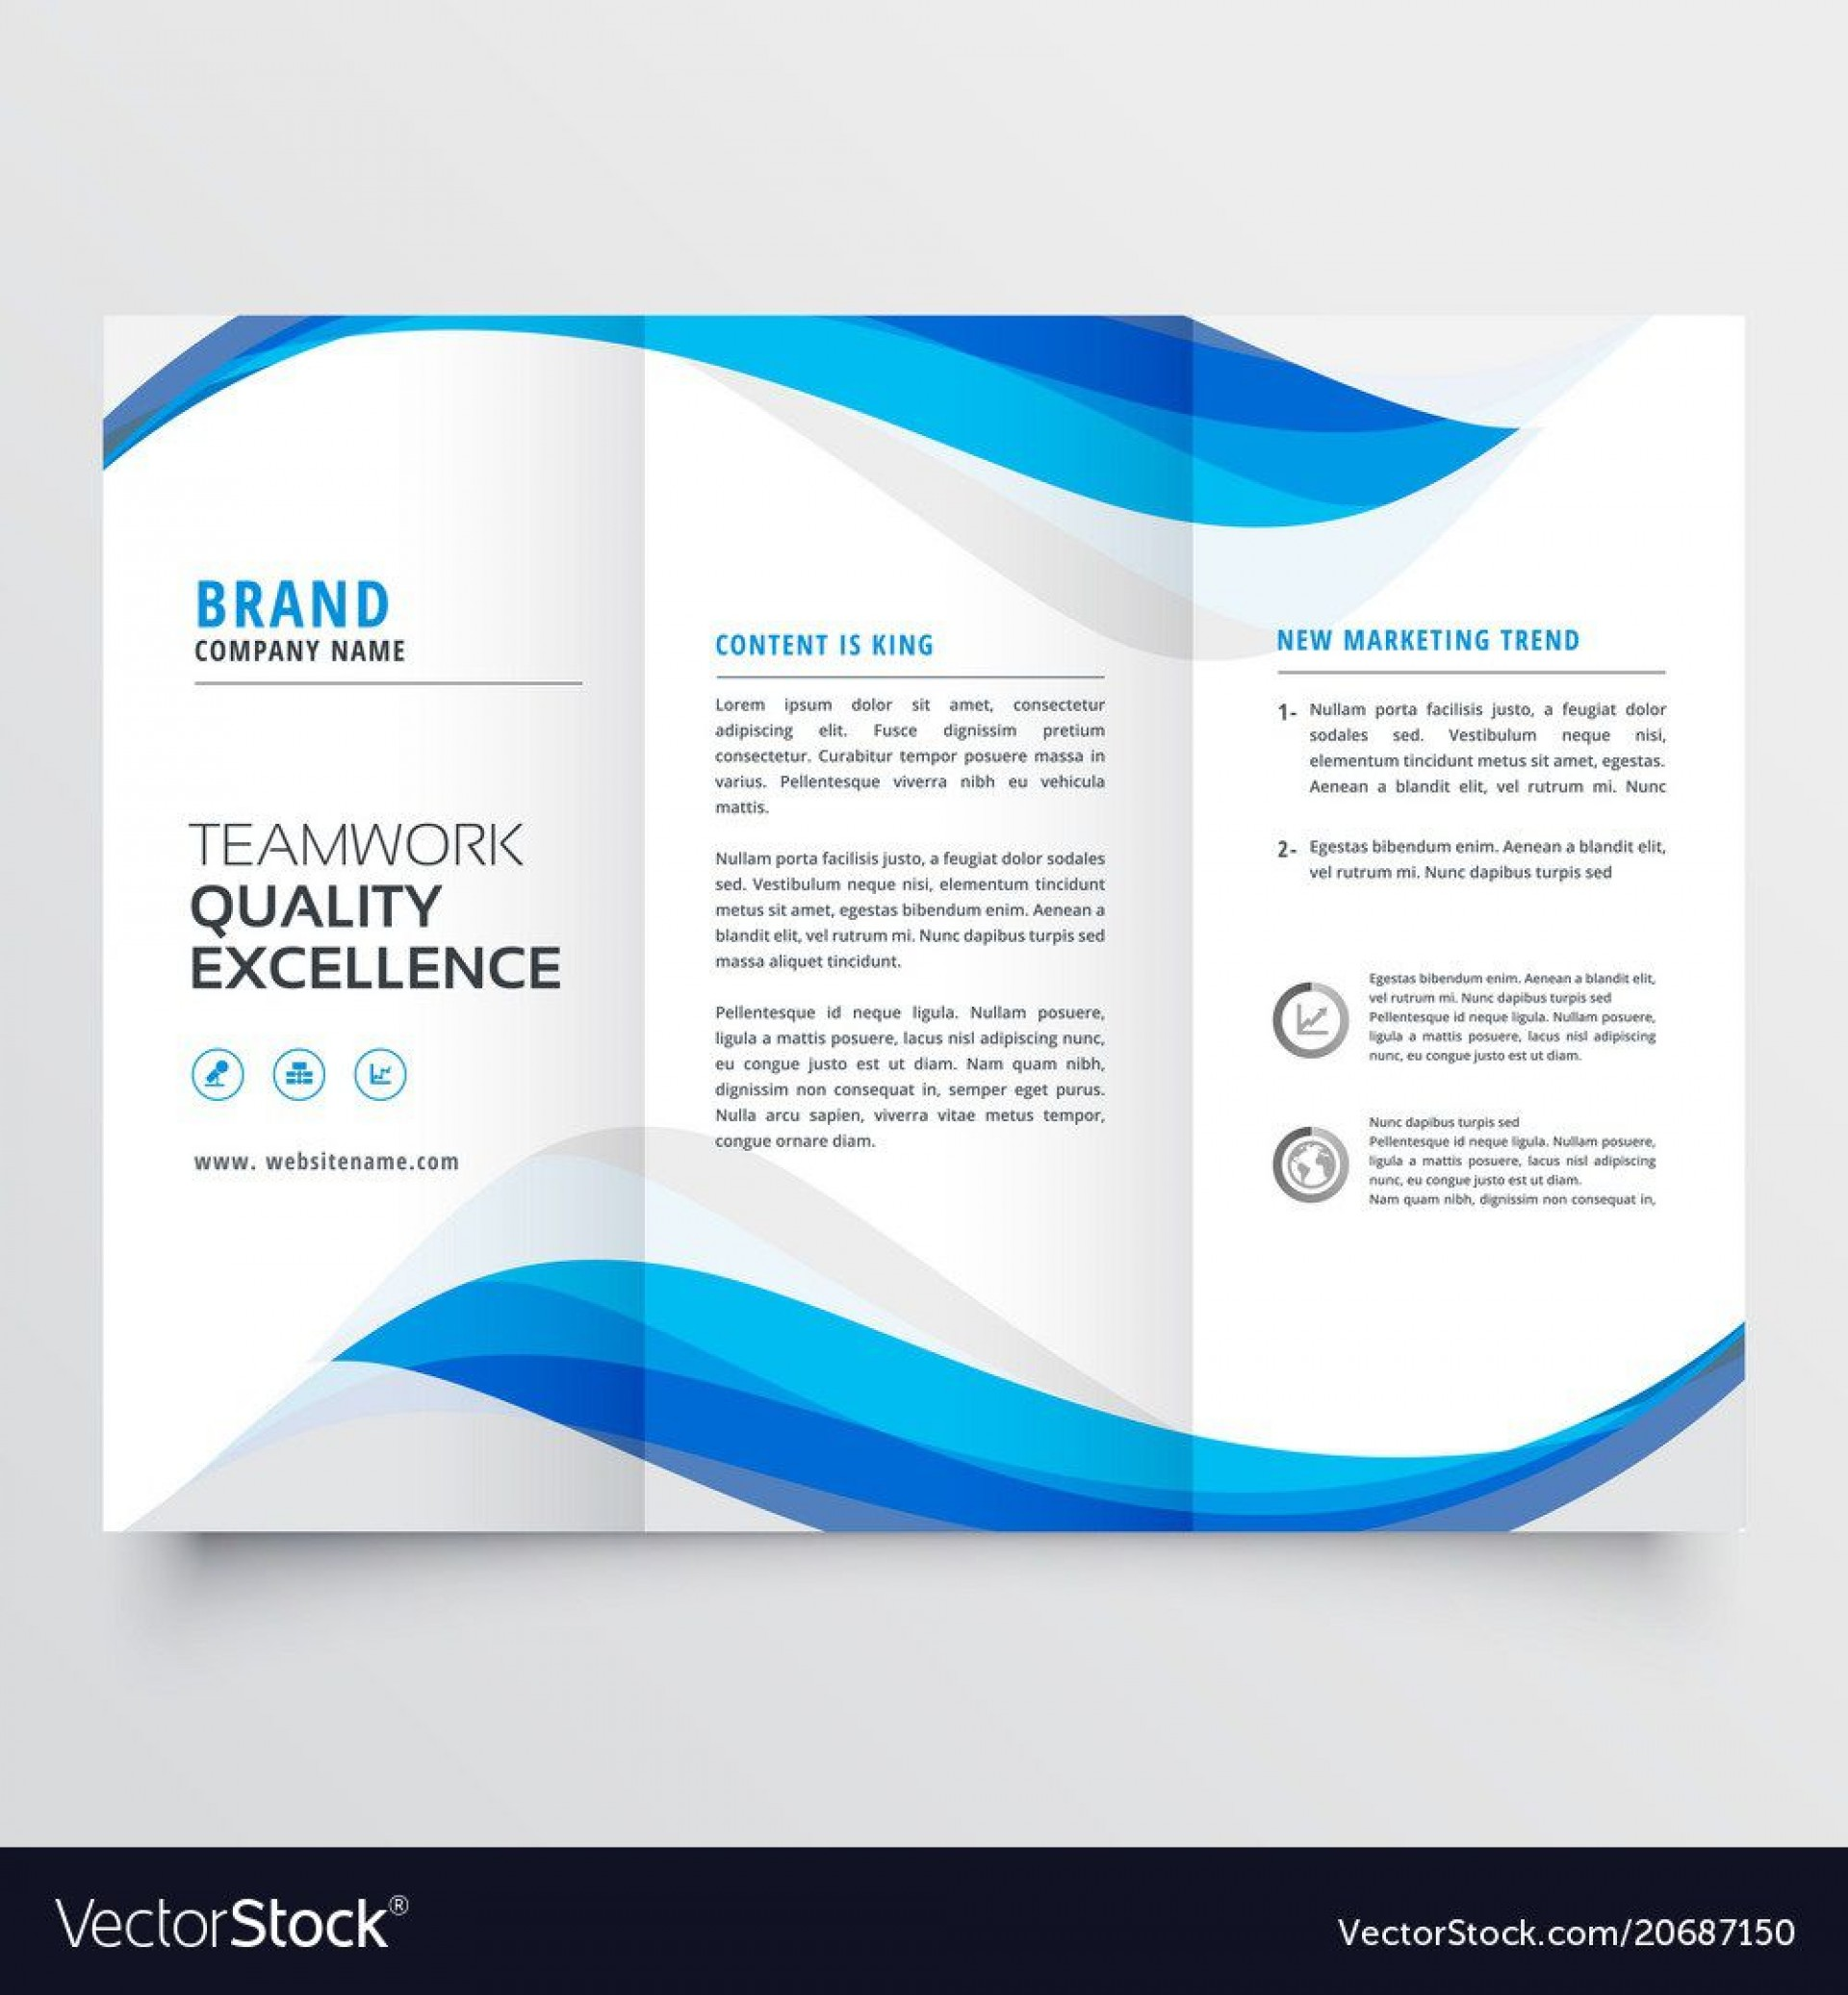 005 Dreaded Brochure Template Free Download Inspiration  Microsoft Publisher Corporate Psd For Adobe Illustrator1920